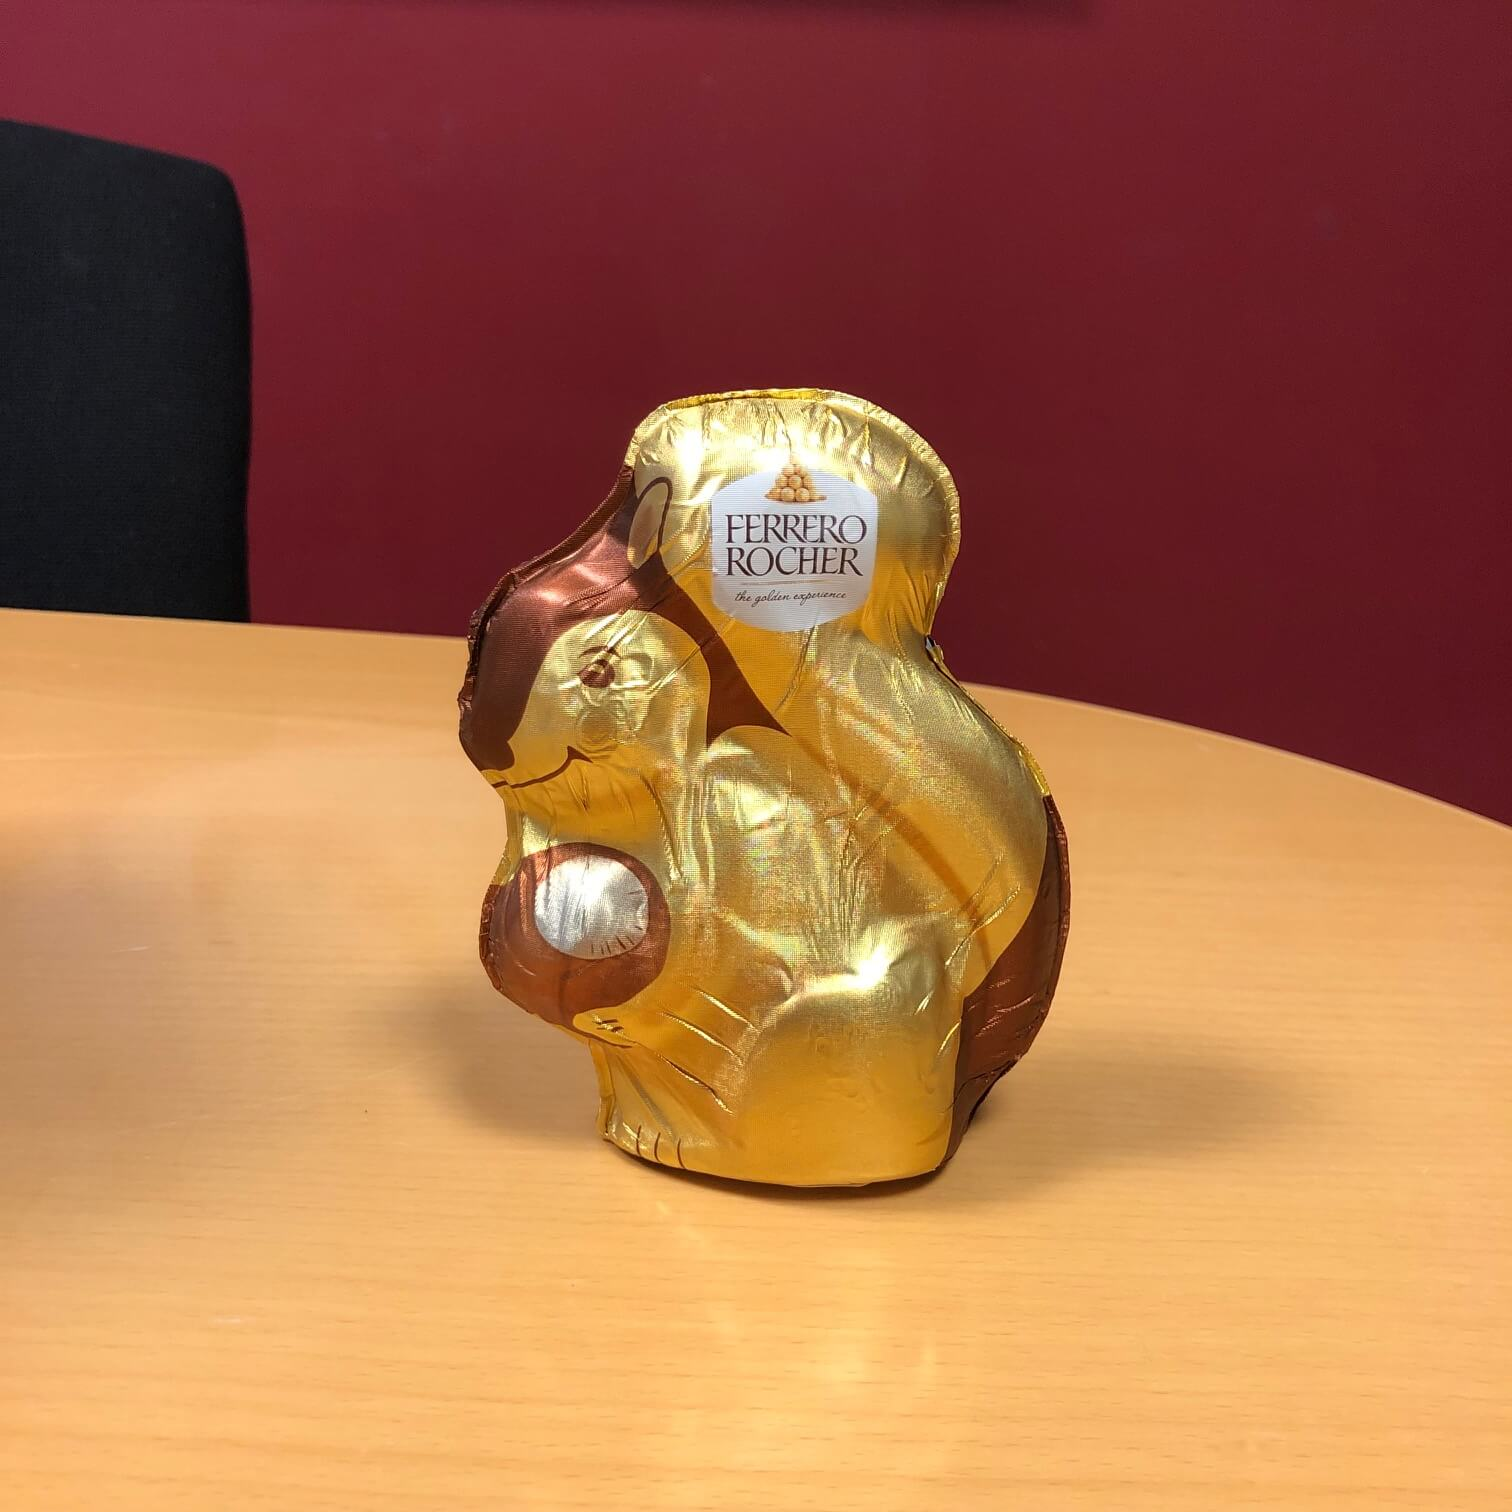 Ferrero Rocher's squirrel shaped easter egg.